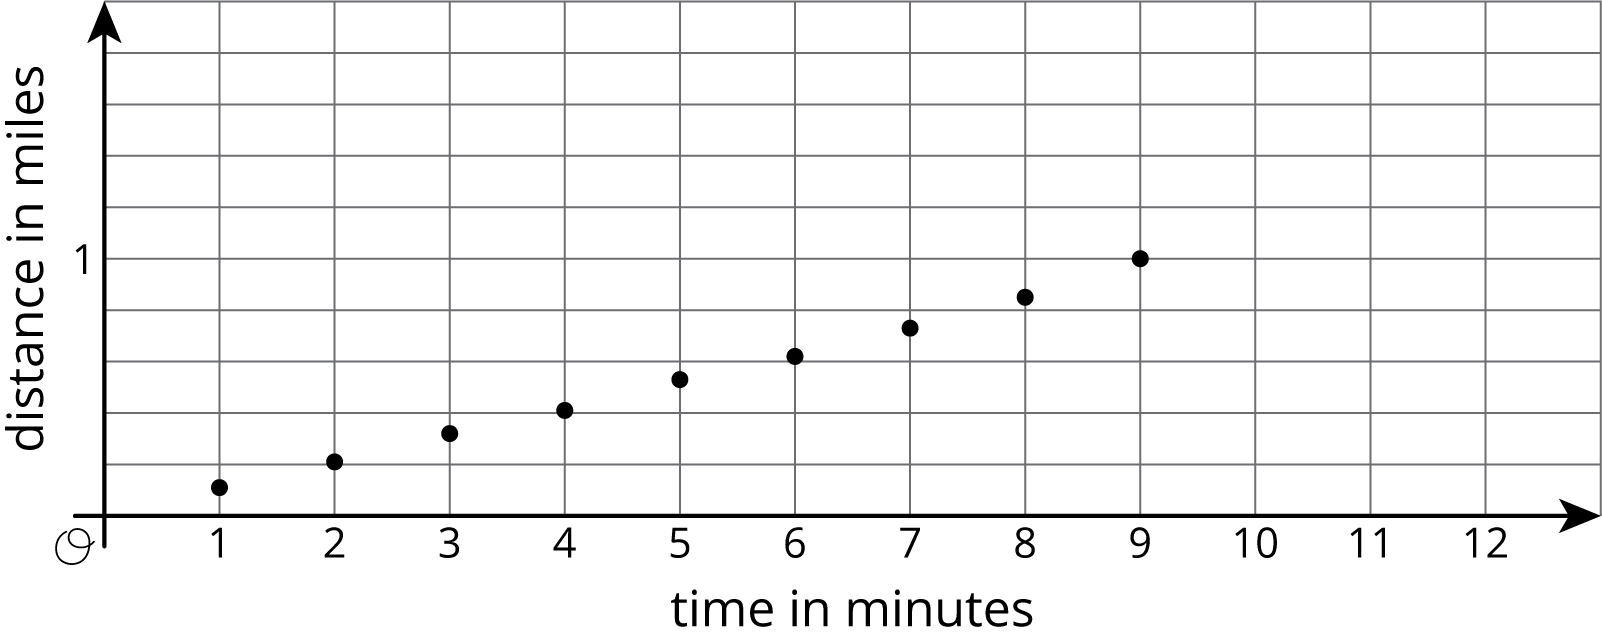 "A scatterplot in a coordinate plane with the origin labeled ""O."" The horizontal axis is labeled ""time in minutes"" and the numbers 1 through 12 are indicated. The vertical axis is labeled ""distance in miles,"" and the number 1 is indicated. The graph shows the trend of the data points moving approximately linearly upward and to the right.  The coordinates of the points are as follows: 1 comma 0 point 11, 2 comma 0 point 2 1, 3 comma 0 point 3 2, 4 comma 0 point 4 1, 5 comma 0 point 5 3, 6 comma 0 point 6 2, 7 comma 0 point 7 3, 8 comma 0 point 8 5, 9 comma 1."